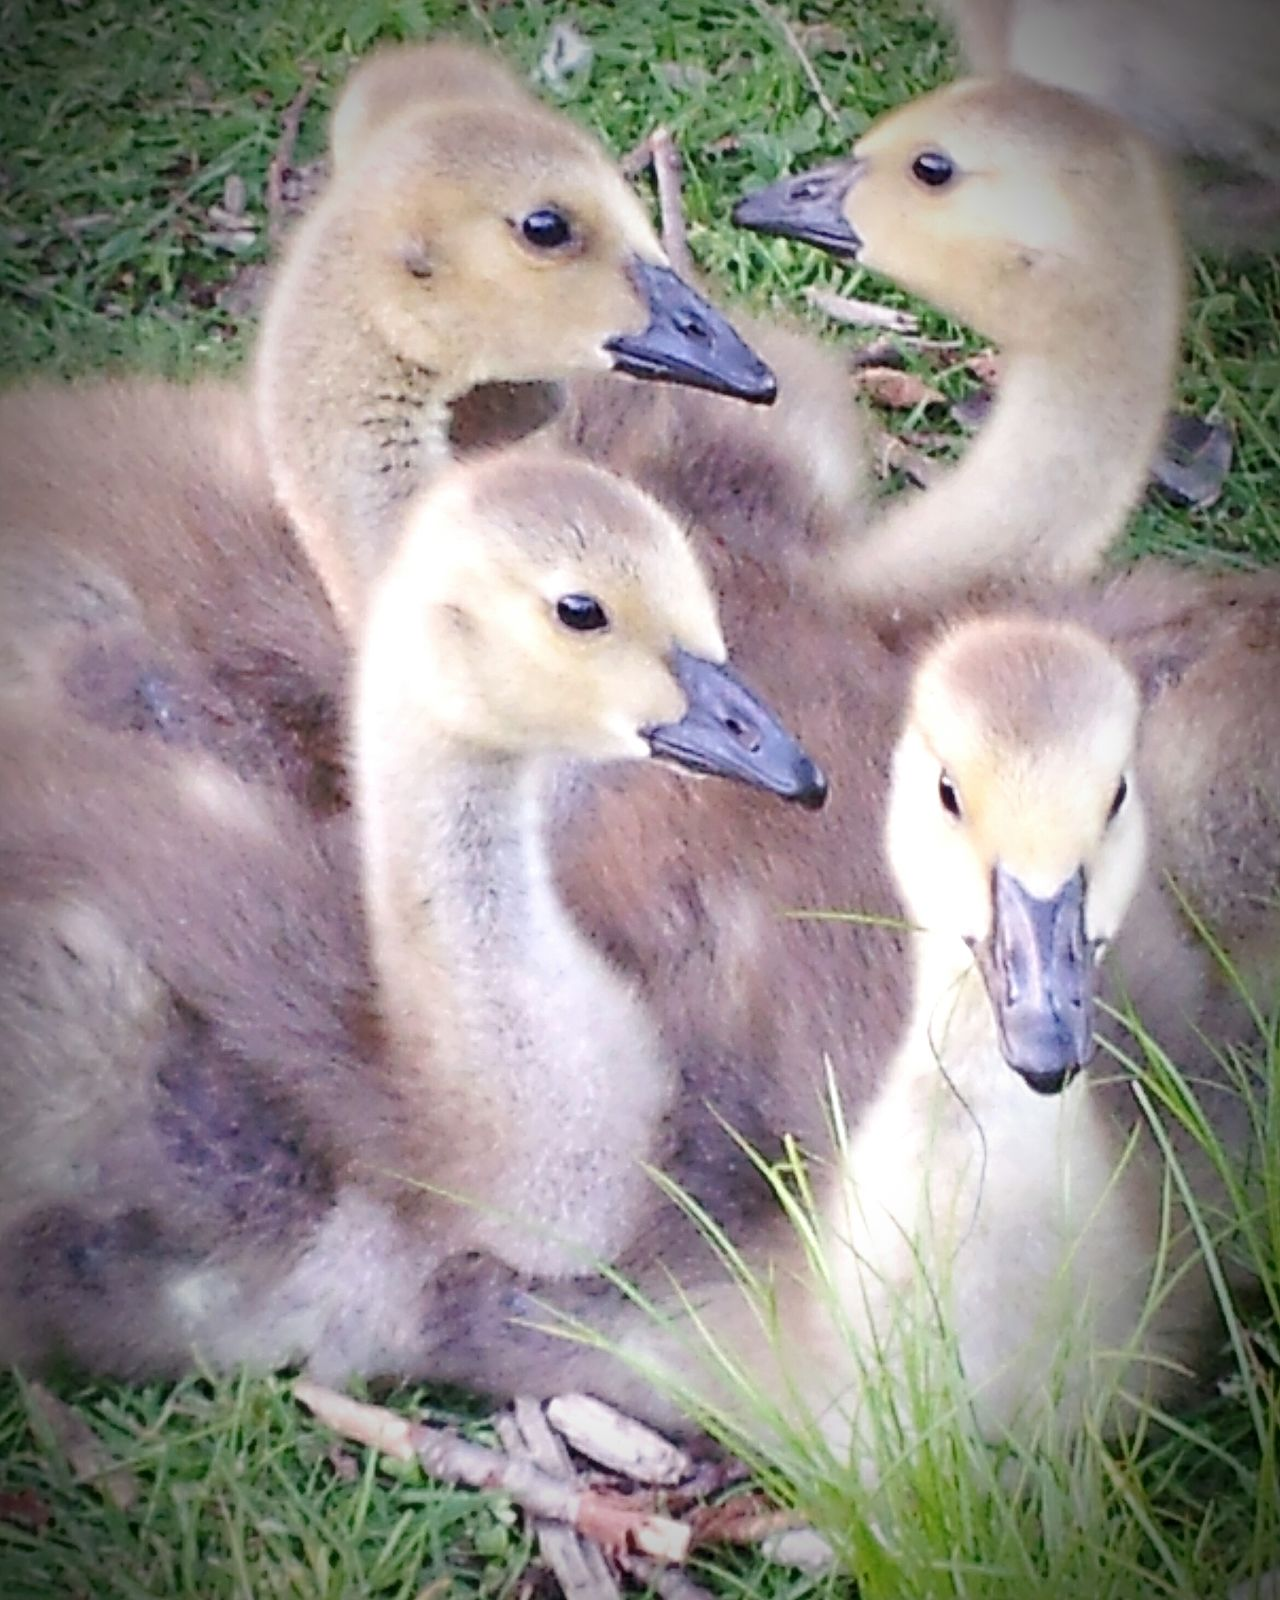 Showcase July Goslings Babygeese Como Lake Nature Photography Nature Wildlife Photography Wildlife Birds Relaxing Photography Photooftheday Photoshoot Yellow Color Cuteness Cutenessoverload Cute♡ Gosling Brood Gosling, Canada Goose, Resting, Park, Grass Geese Photography Geese In Nature